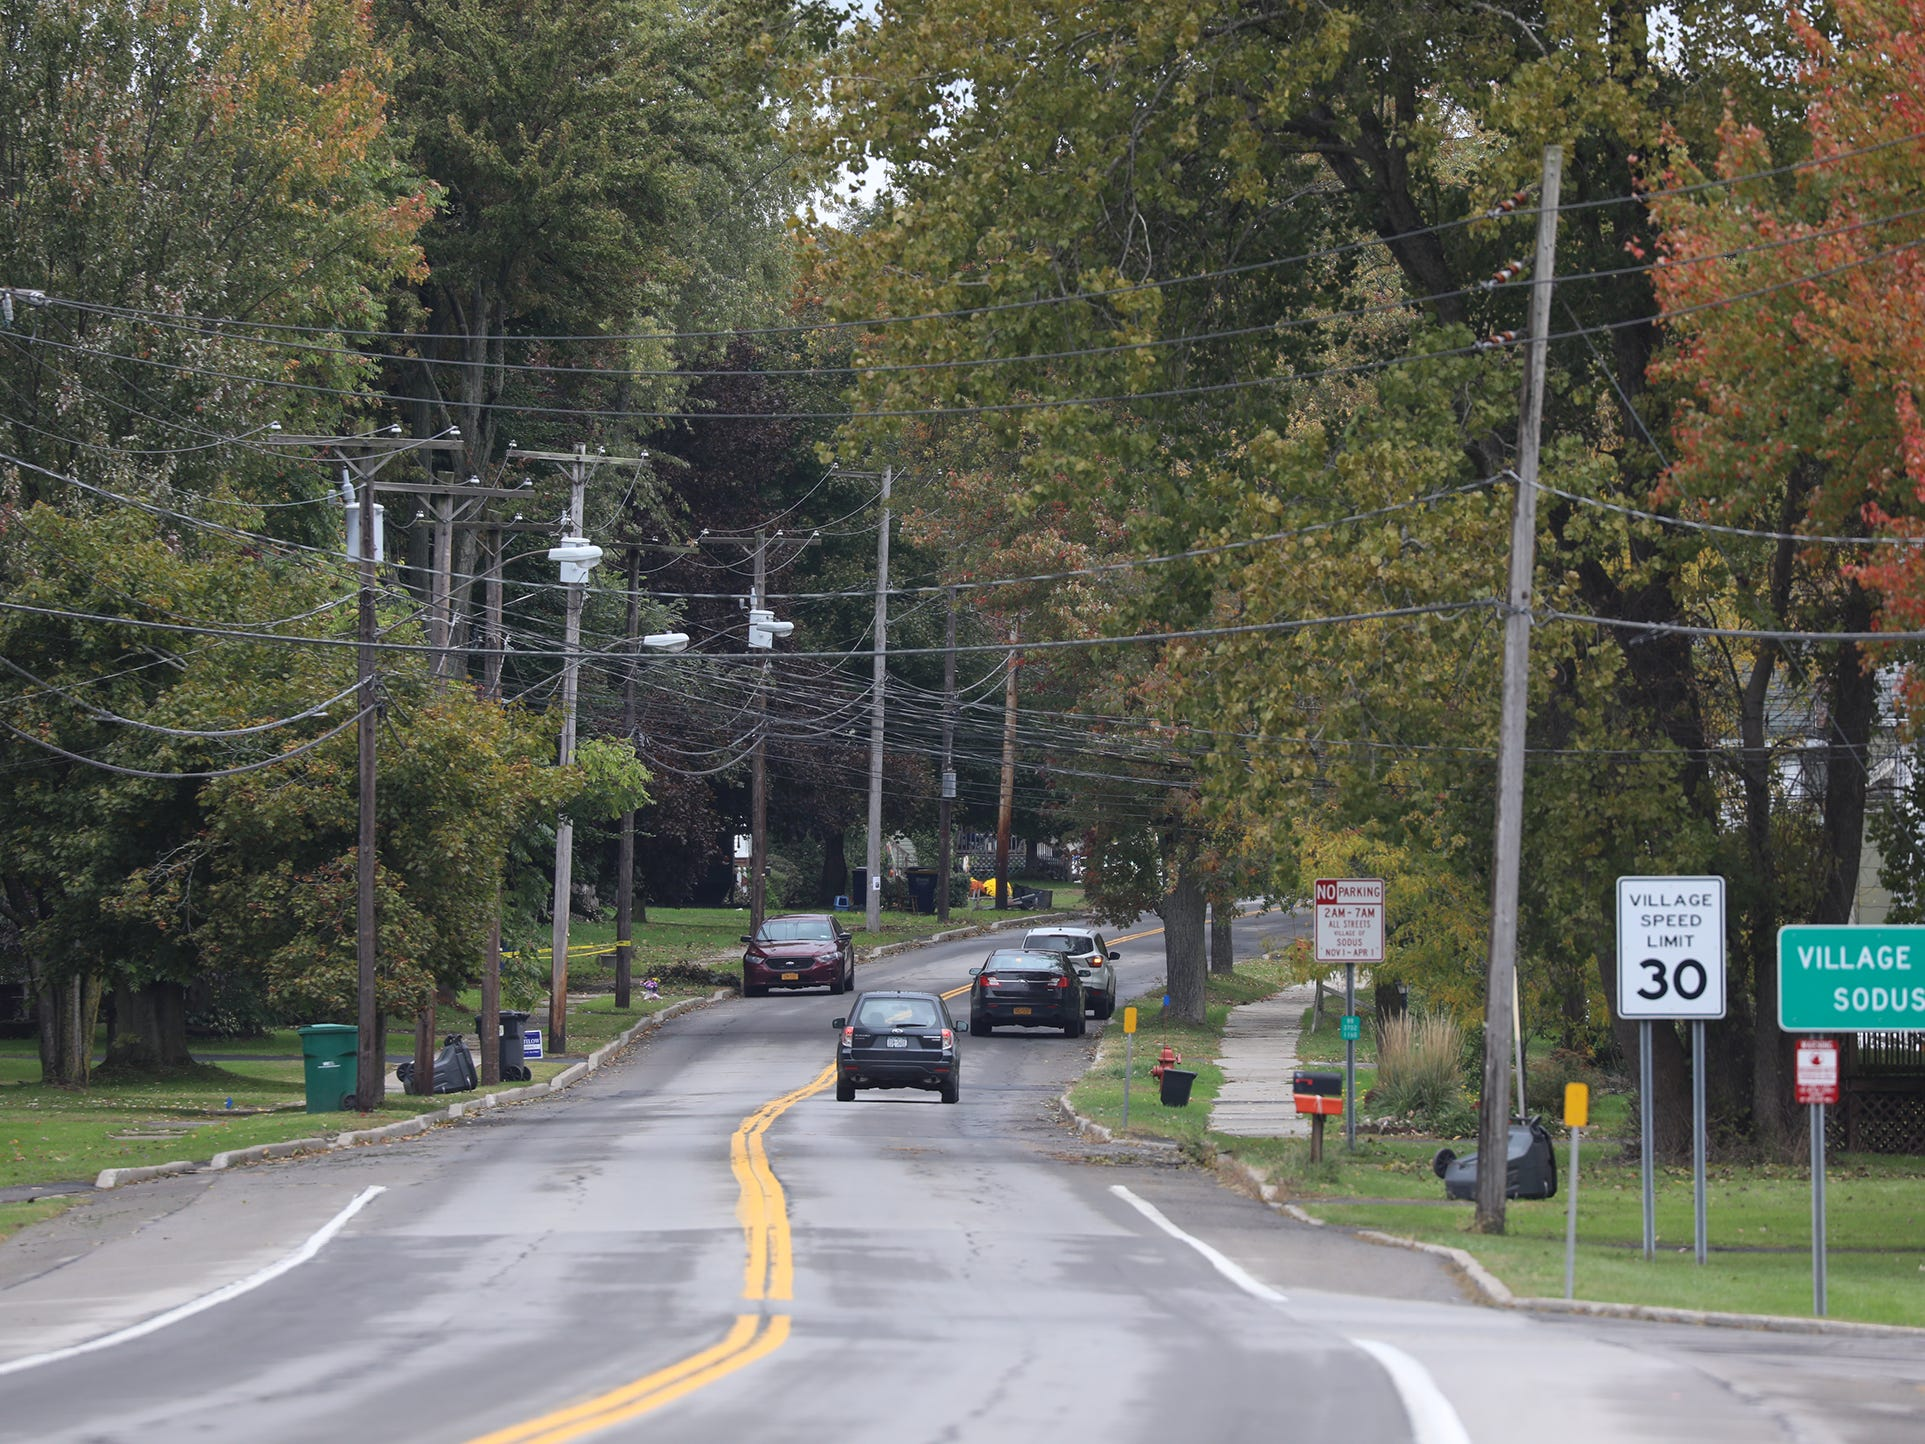 Carlton St. also known as Rt. 88 is one of the main roads into the Village of Sodus.